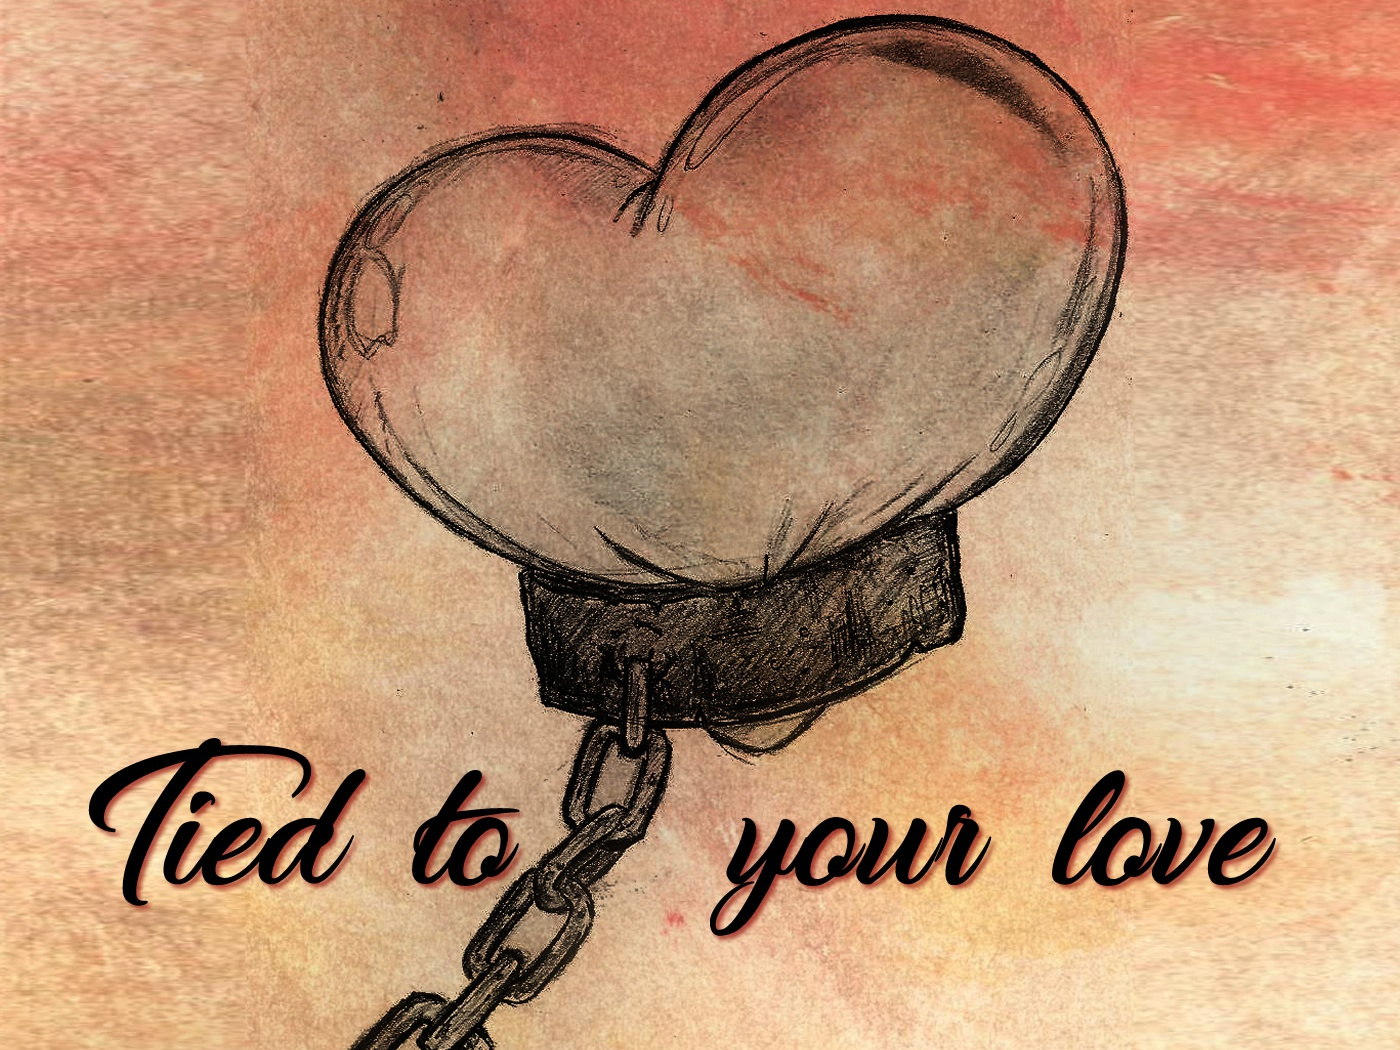 tied to your love digital children editorial art black and white dibujo card art funny girl pencil disney hand draw illustration cute heart draw sketch pretty inlove love slave